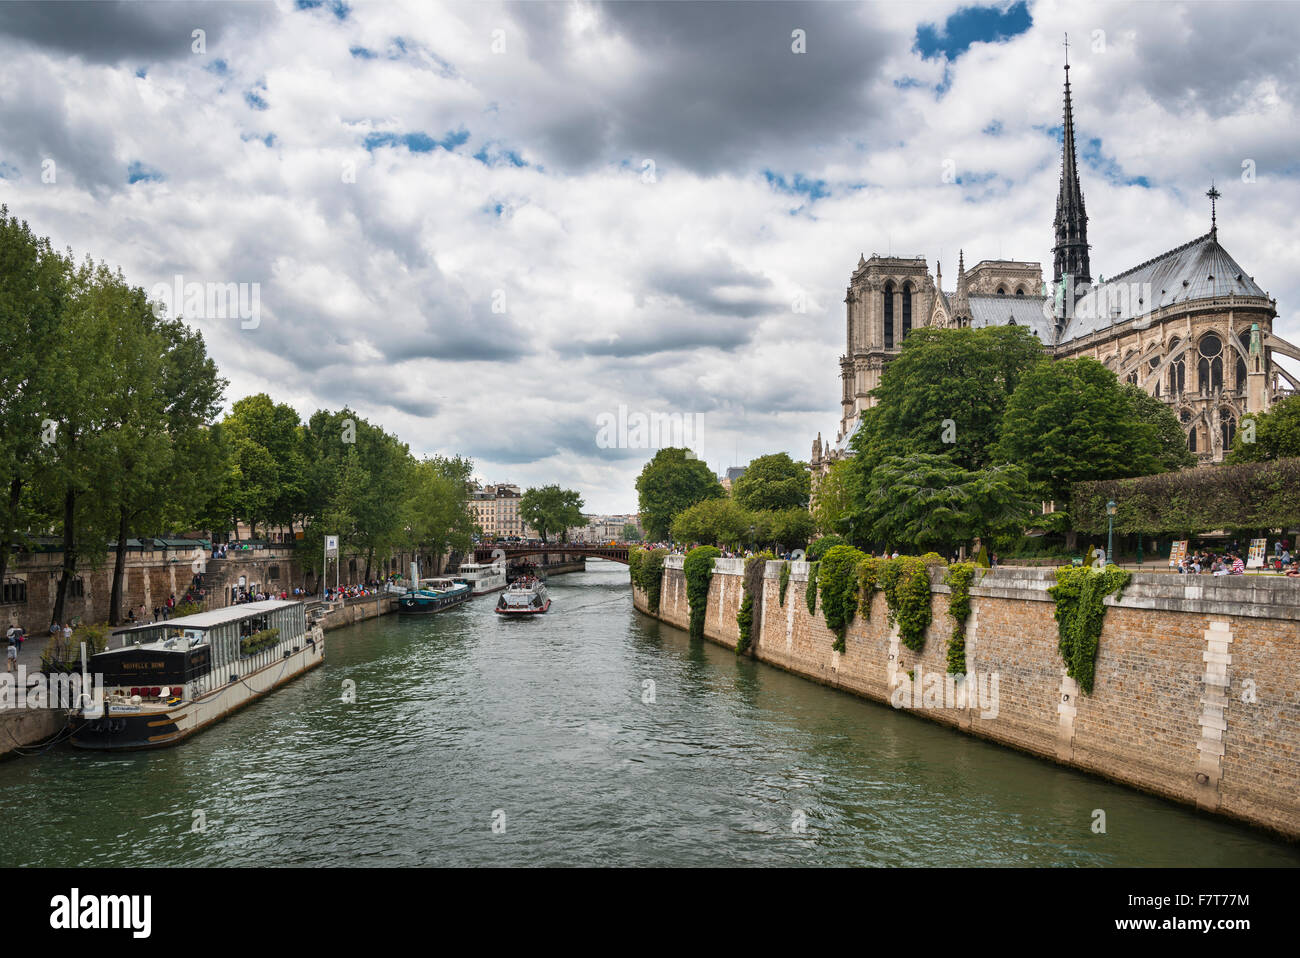 Houseboats on the Seine, Notre Dame Cathedral, Paris, France - Stock Image